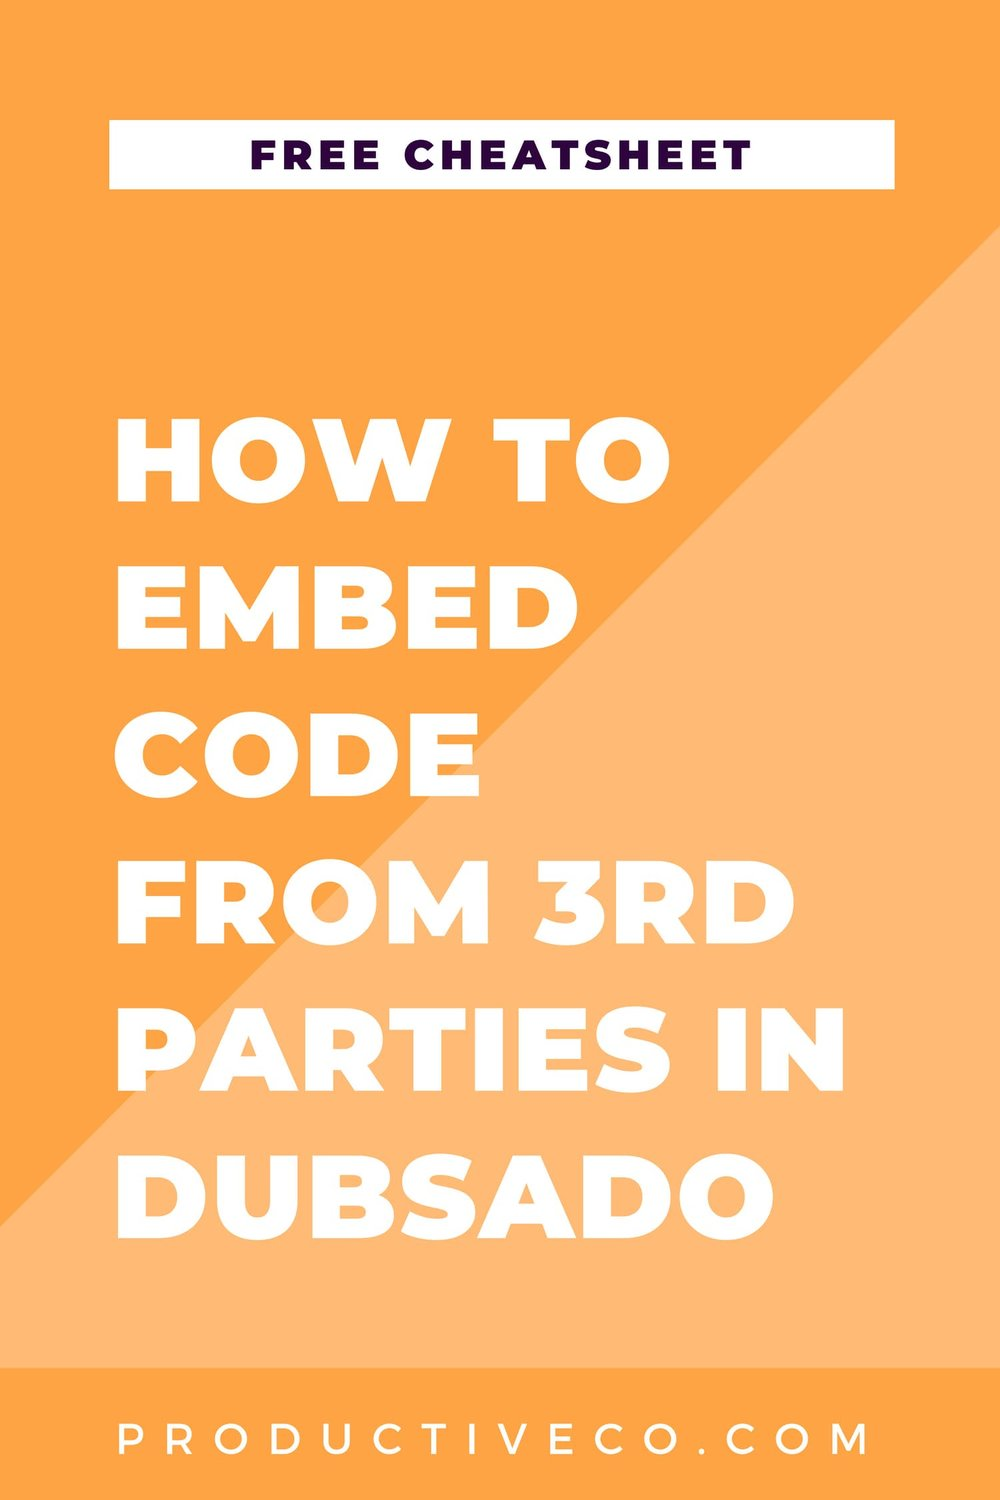 Add any 3rd party software to Dubsado. Find out how to embed code in Dubsado here.